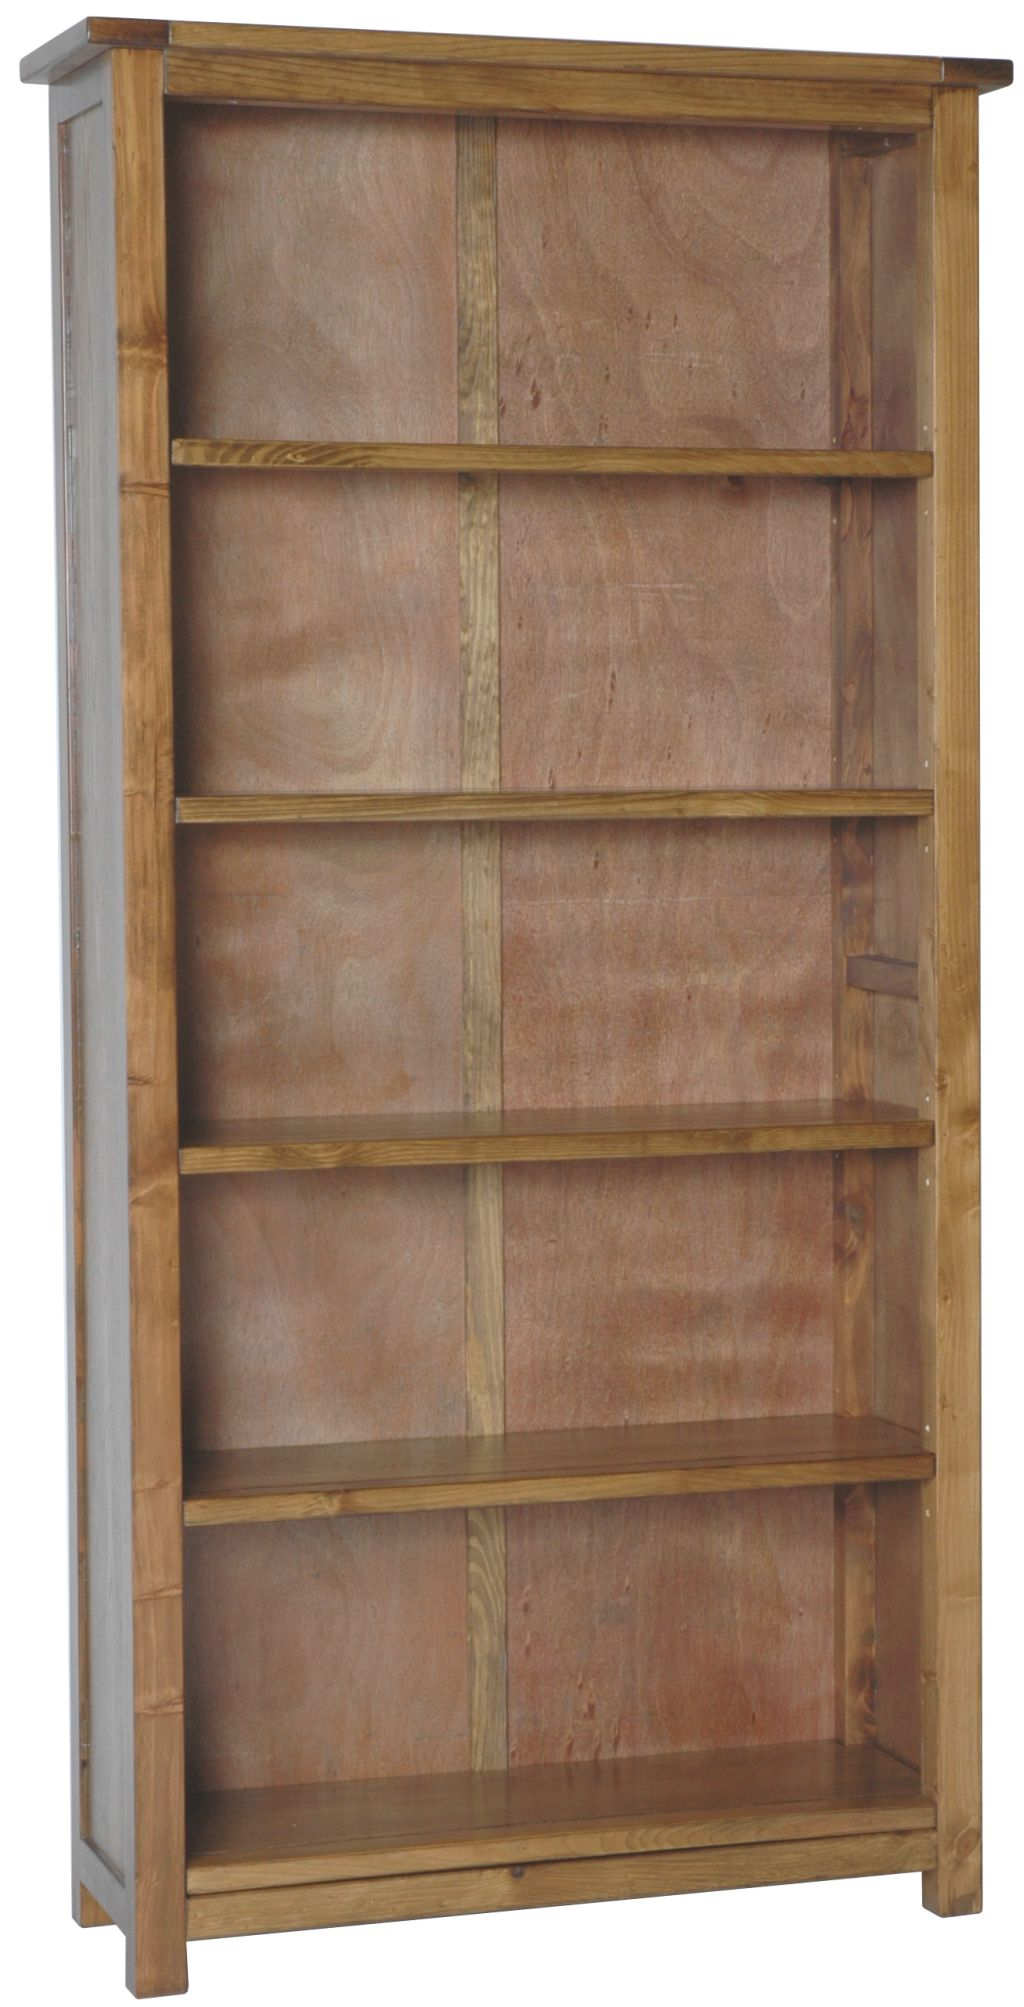 Fairway Pine Living Room Furniture Tall Large Office Bookcase